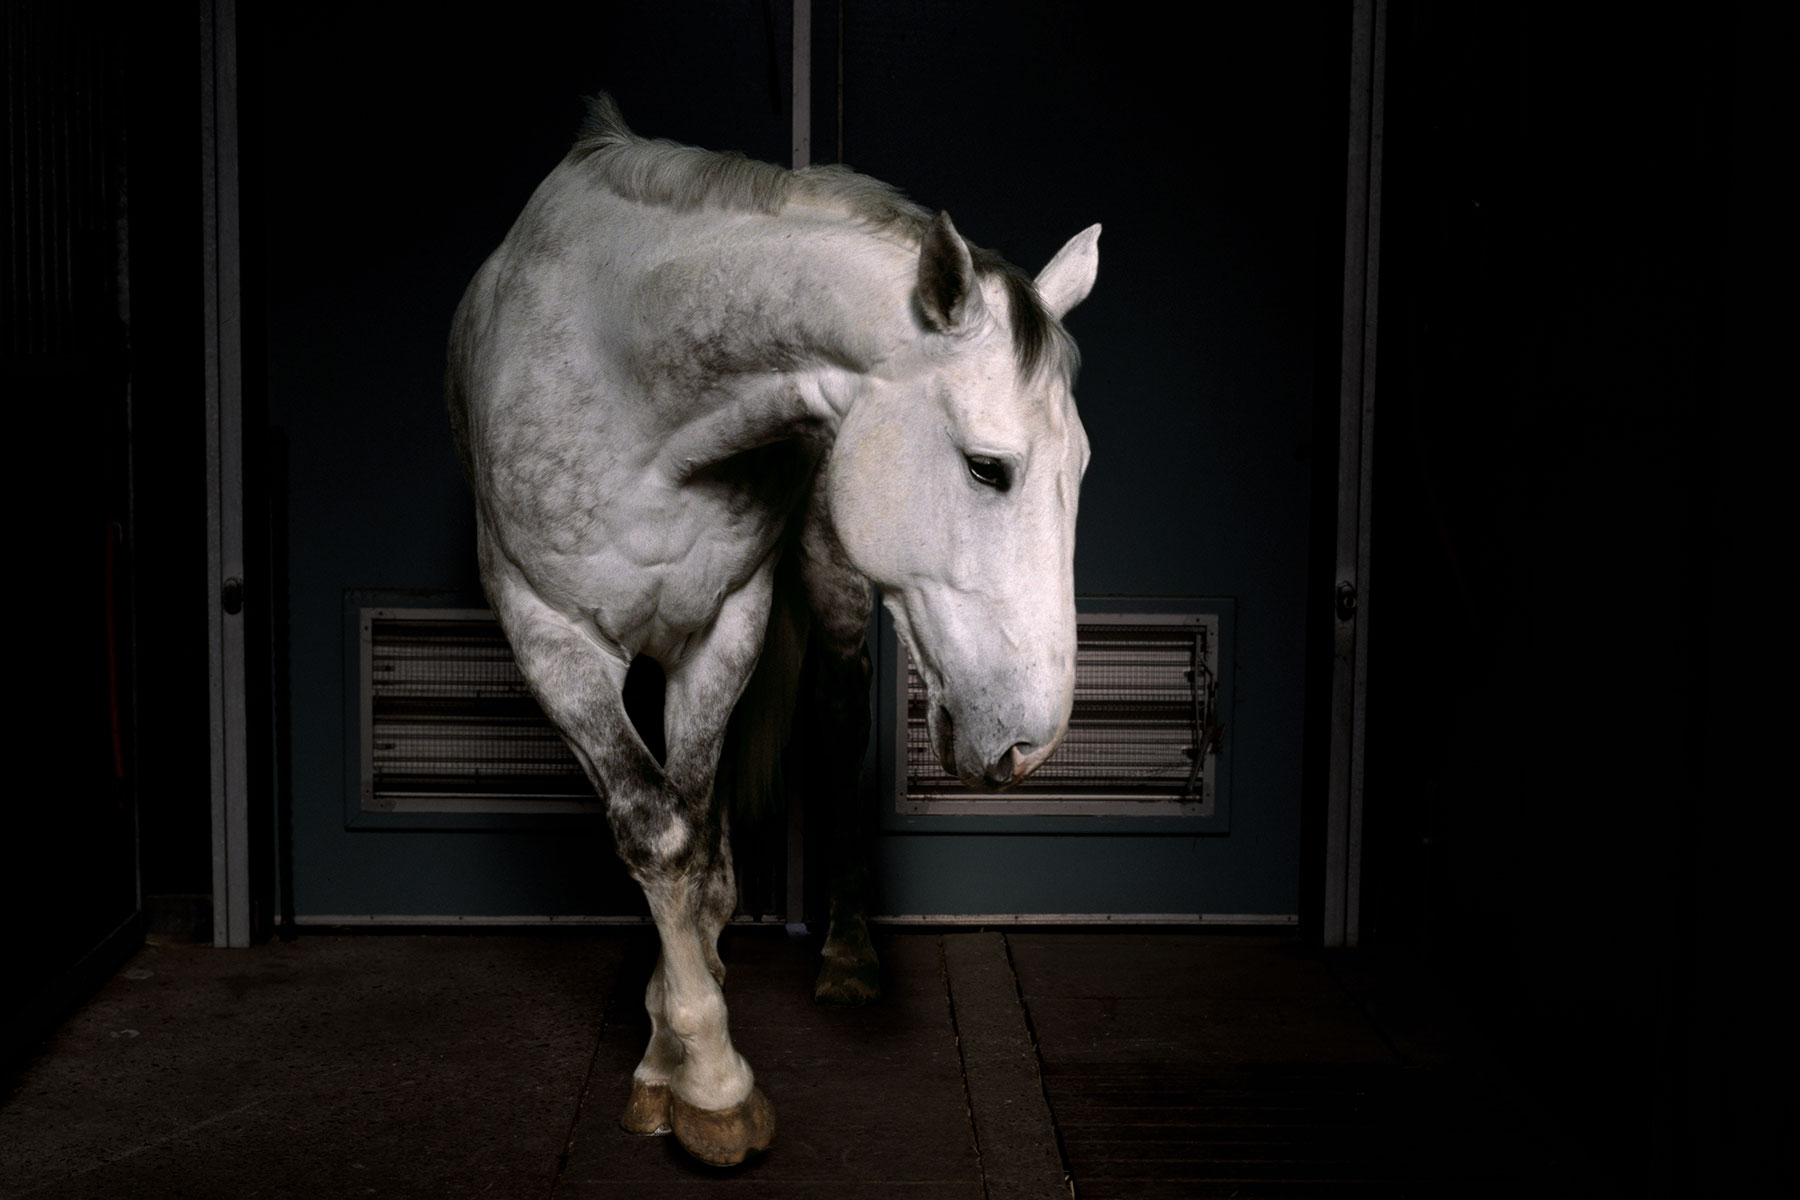 Horses can lapse into apparent depression when they lose a companion.